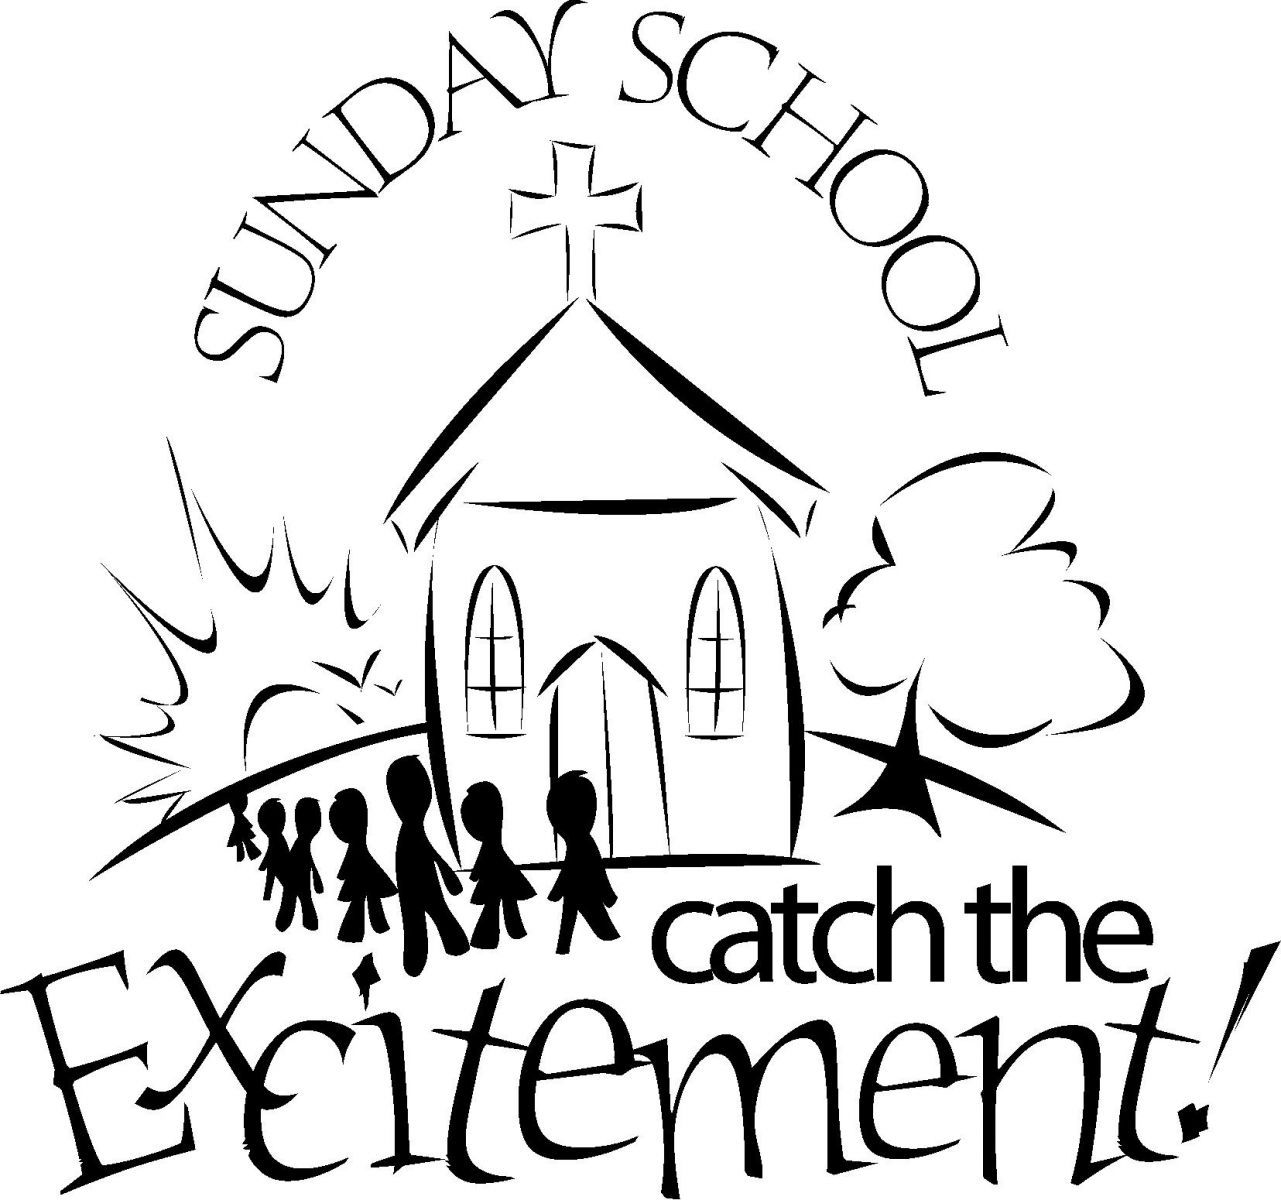 Coloring pages for sunday school - Free Sunday School Coloring Pages For Kids Free Sunday School Coloring Pages For Kids